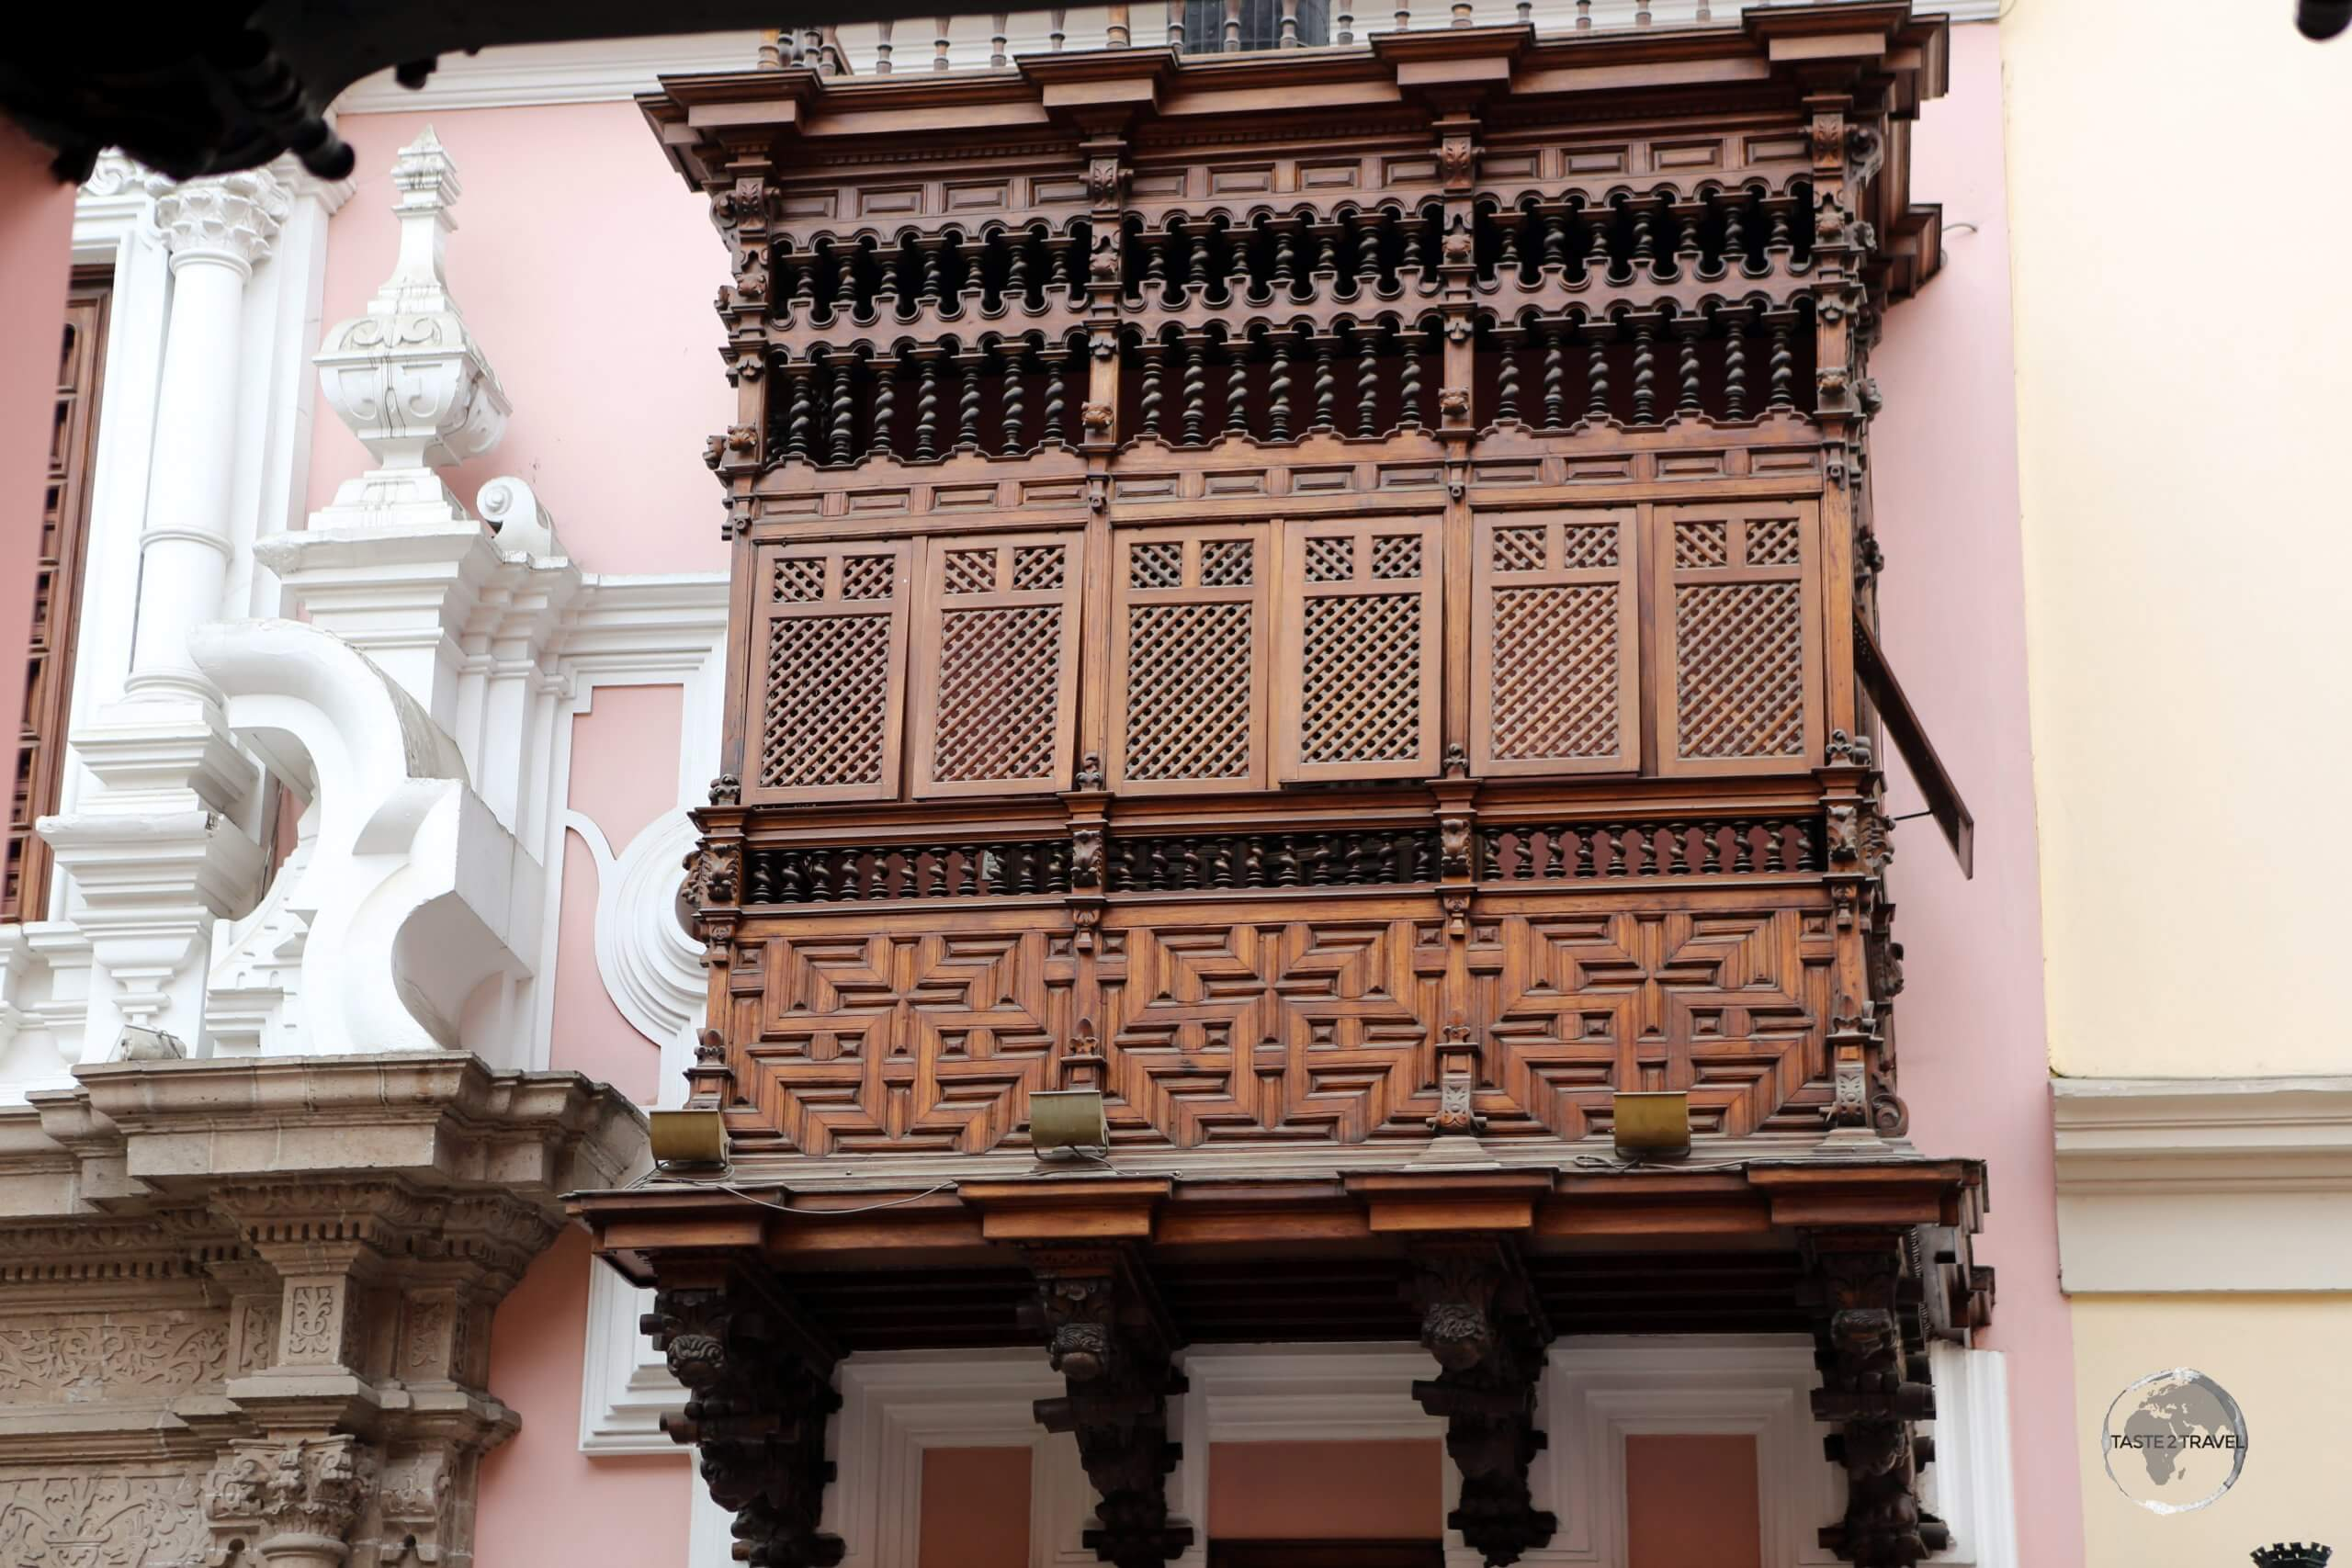 The northern Peruvian city of Trujillo, the first Spanish colony in Peru, is famous for its lavish colonial architecture, and colourful mansions.